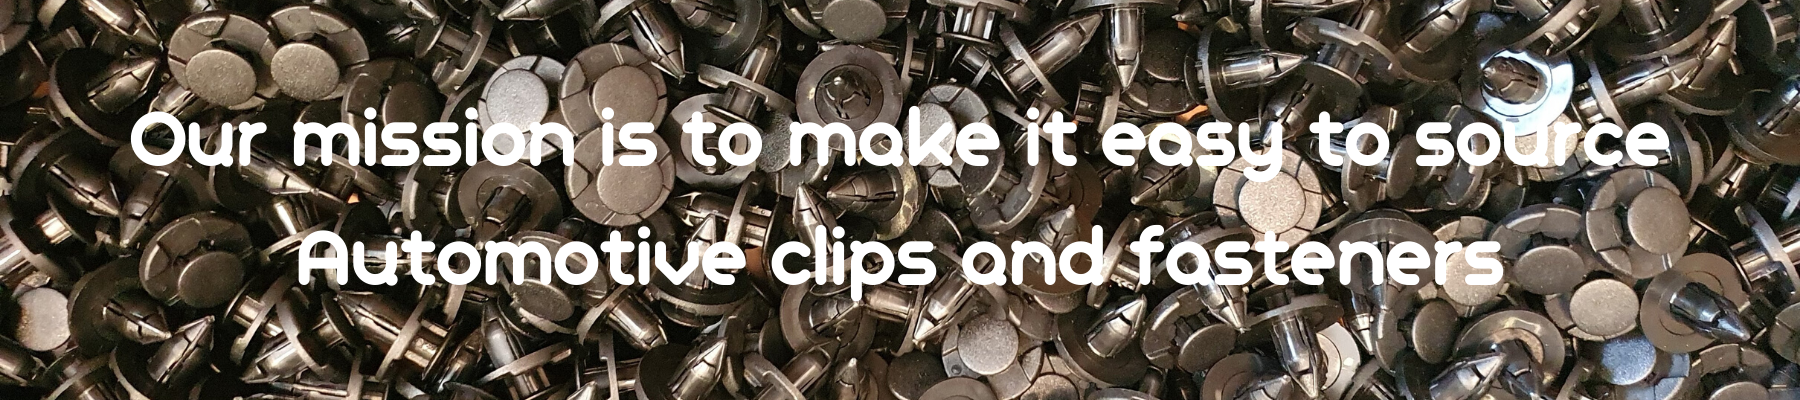 Our mission is to make it easy to source Automotive clips and fasteners